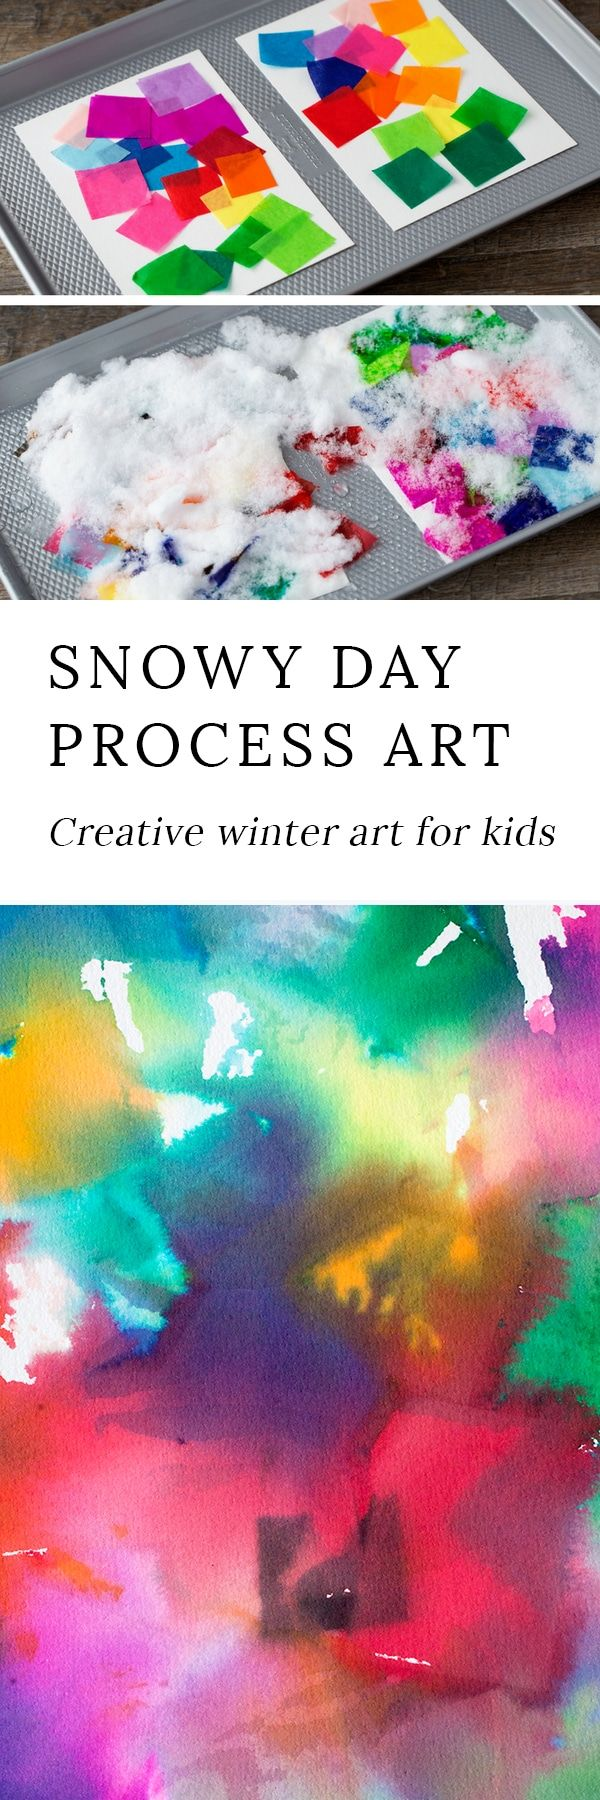 Snowy Day Tissue Paper Art is a creative winter process art project for kids of all ages. This colorful art activity is perfect for home or school! via @https://www.pinterest.com/fireflymudpie/